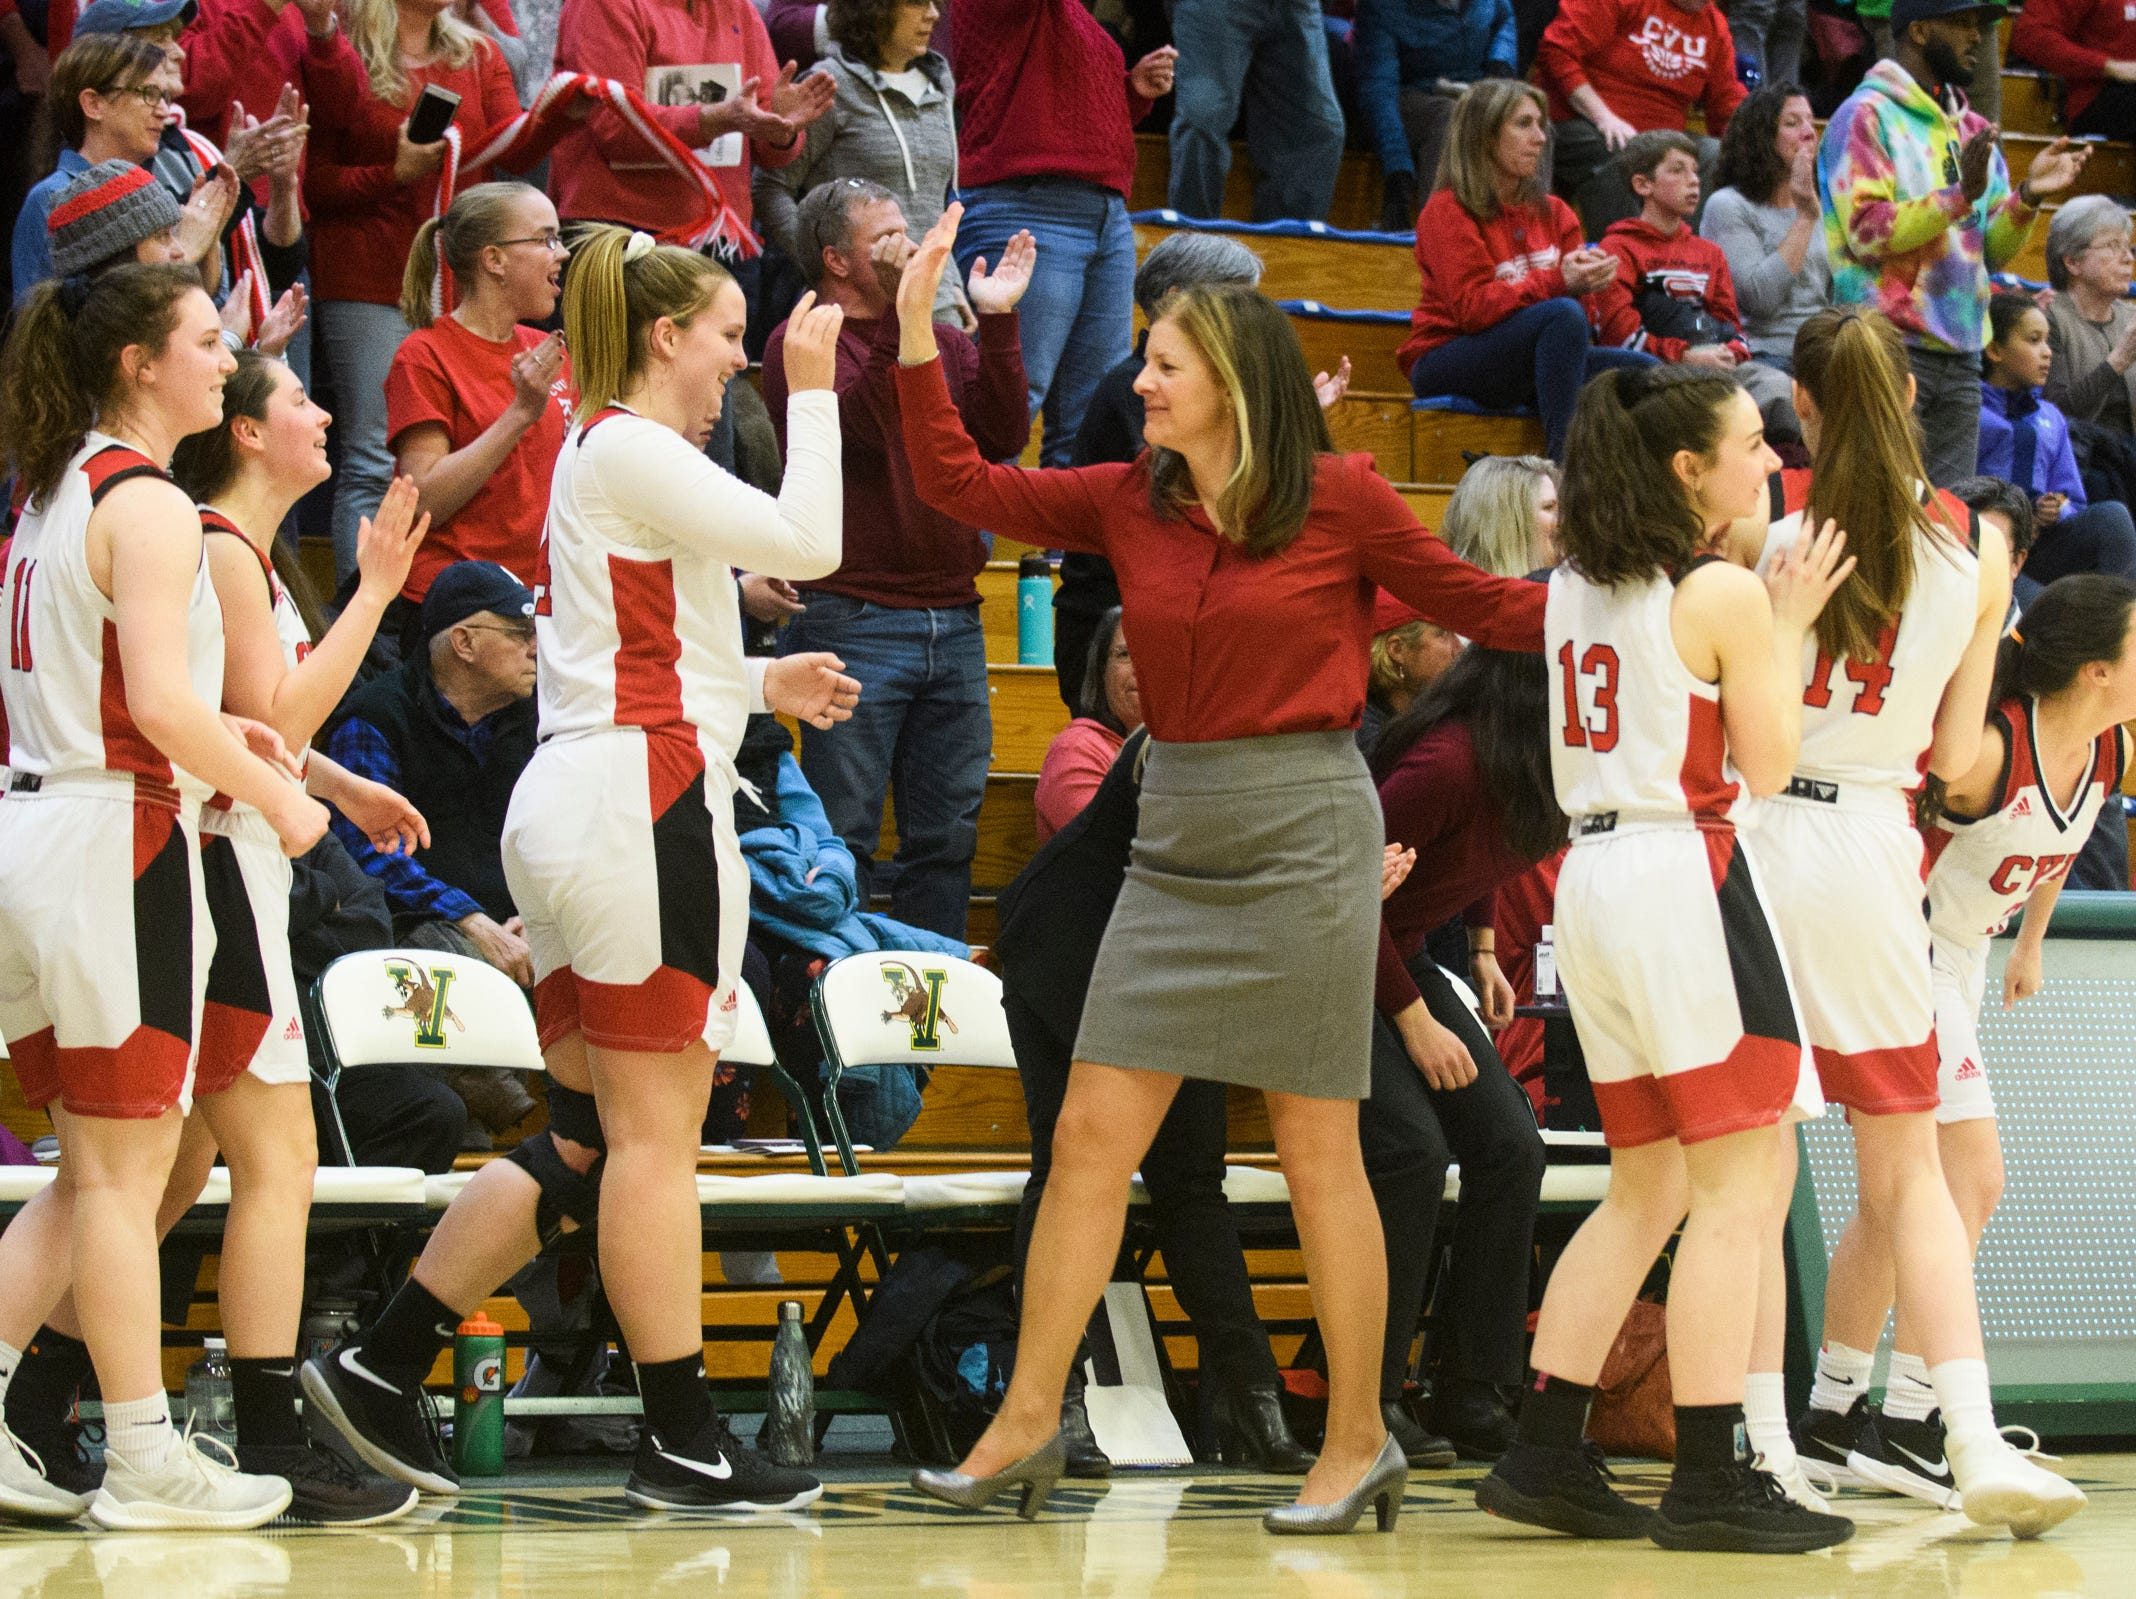 CVU head coach Ute Otley high fives the team at the conclusion of the girls semifinal basketball game between the Rice Green Knights and the Champlain Valley Union Redhawks at Patrick Gym on Wednesday nigh March 6, 2019 in Burlington, Vermont.